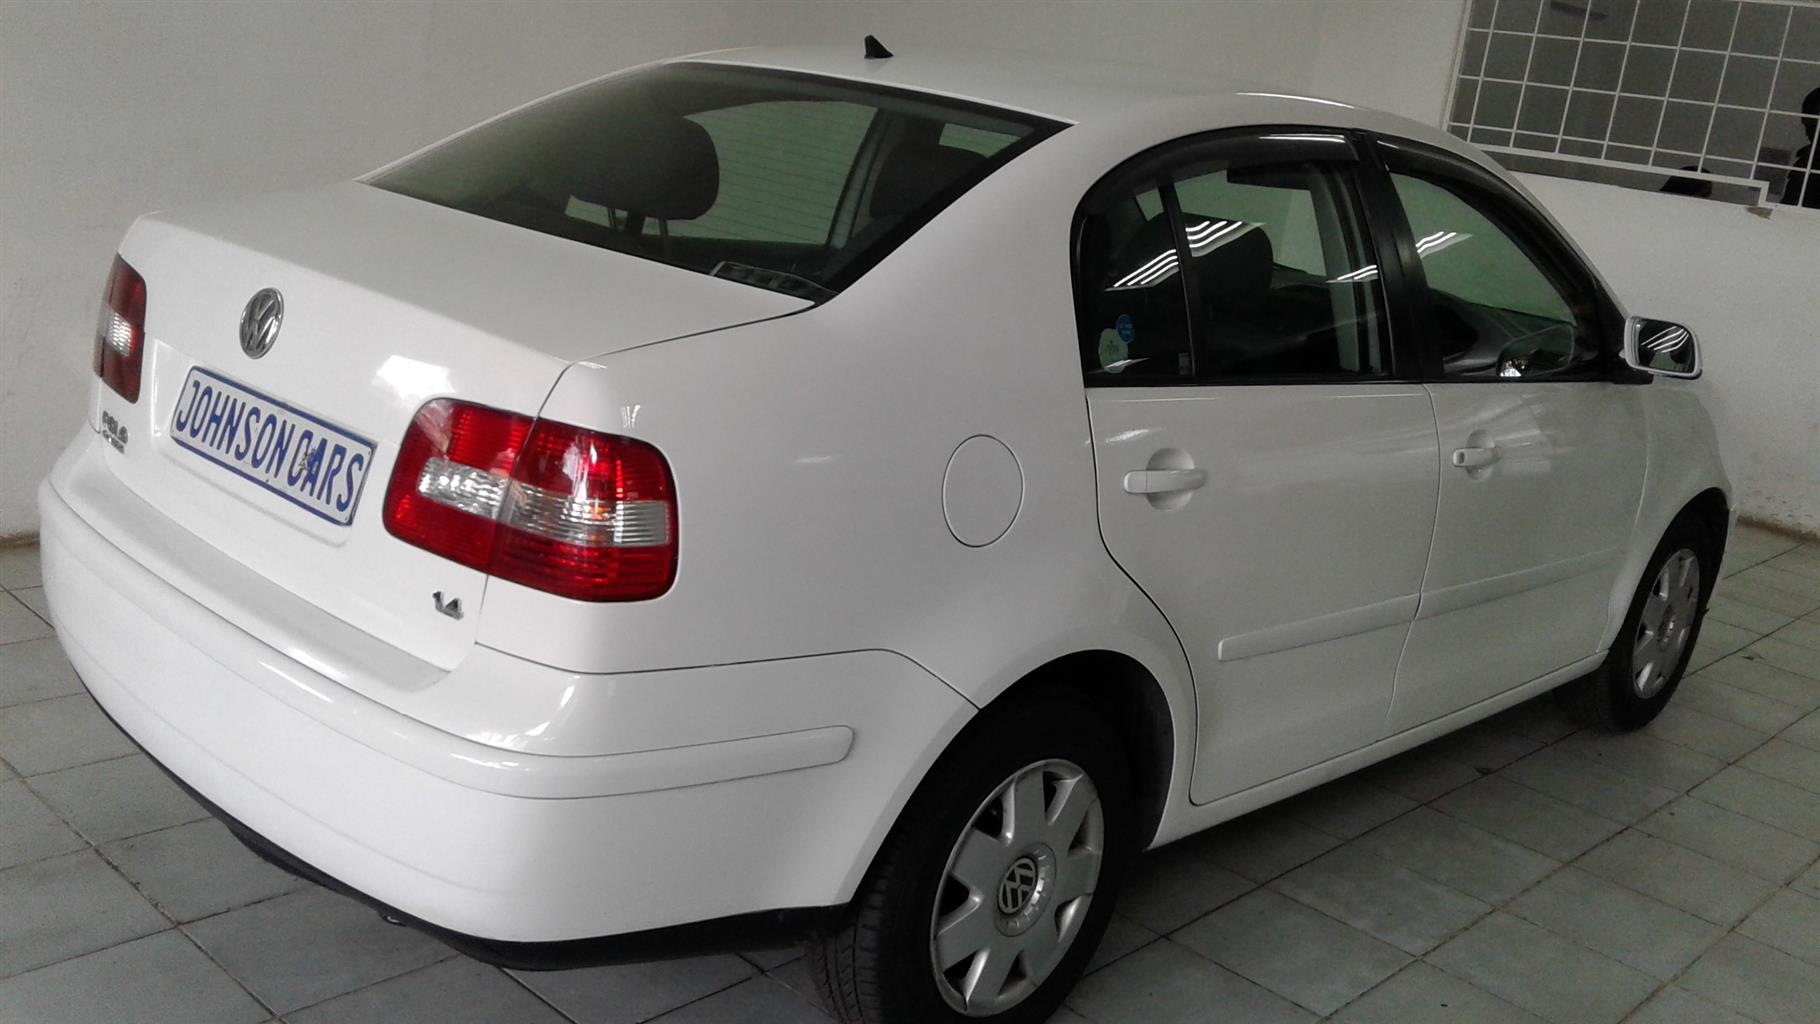 2005 VW Polo sedan POLO GP 1.4 TRENDLINE | Junk Mail